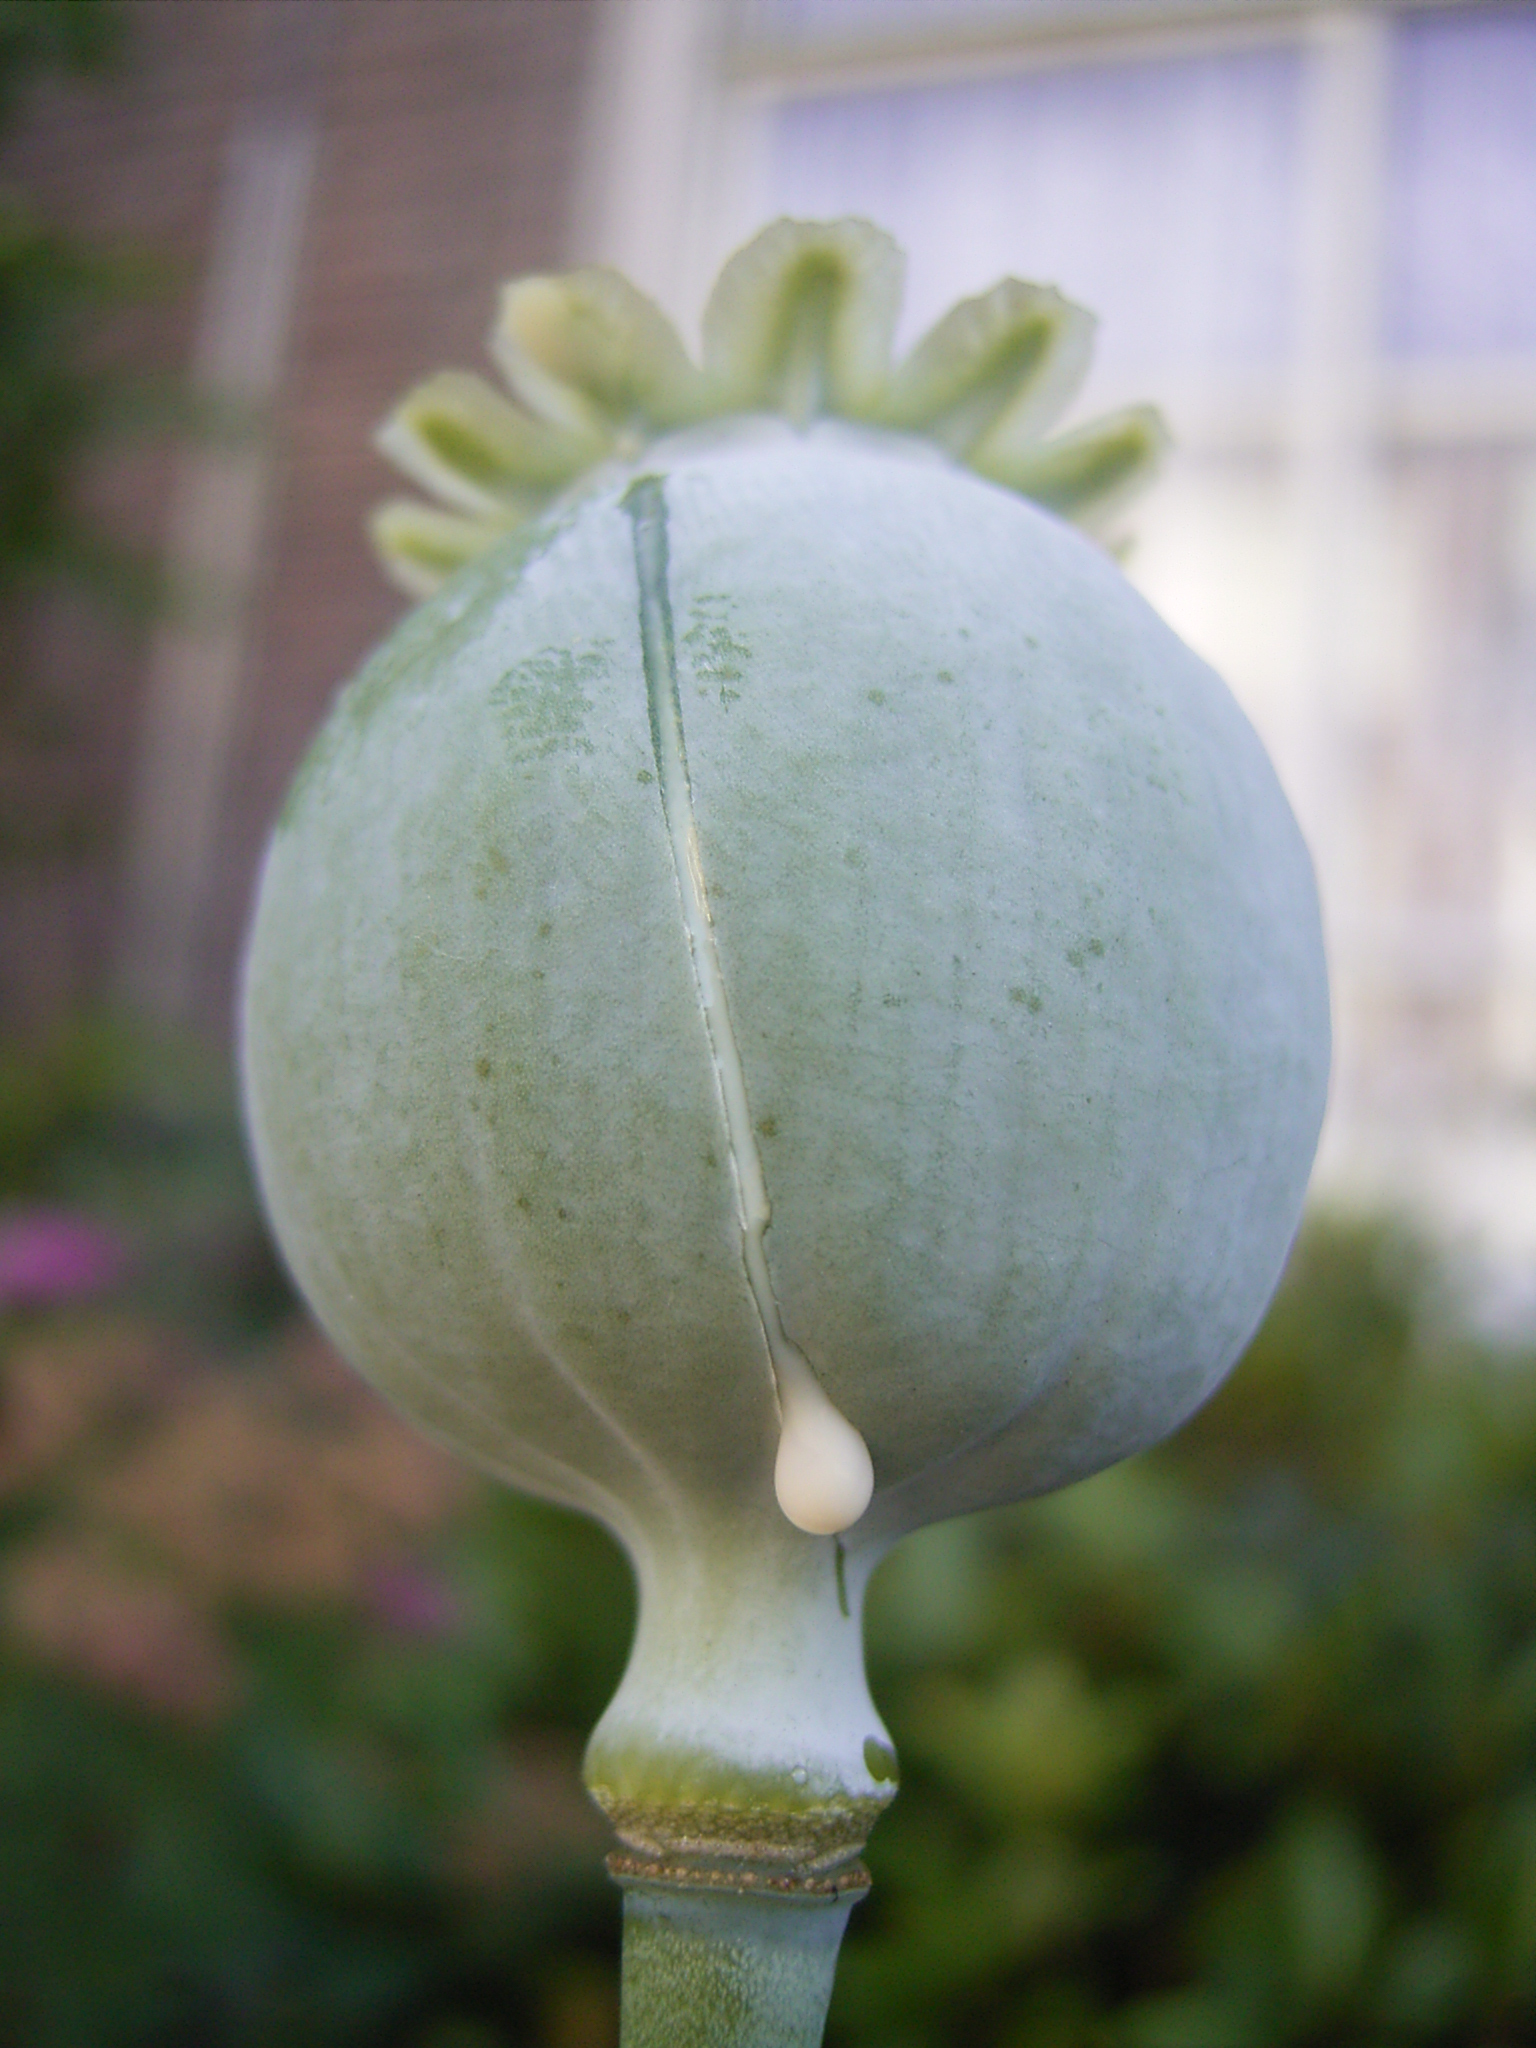 Dripping Opium Poppy